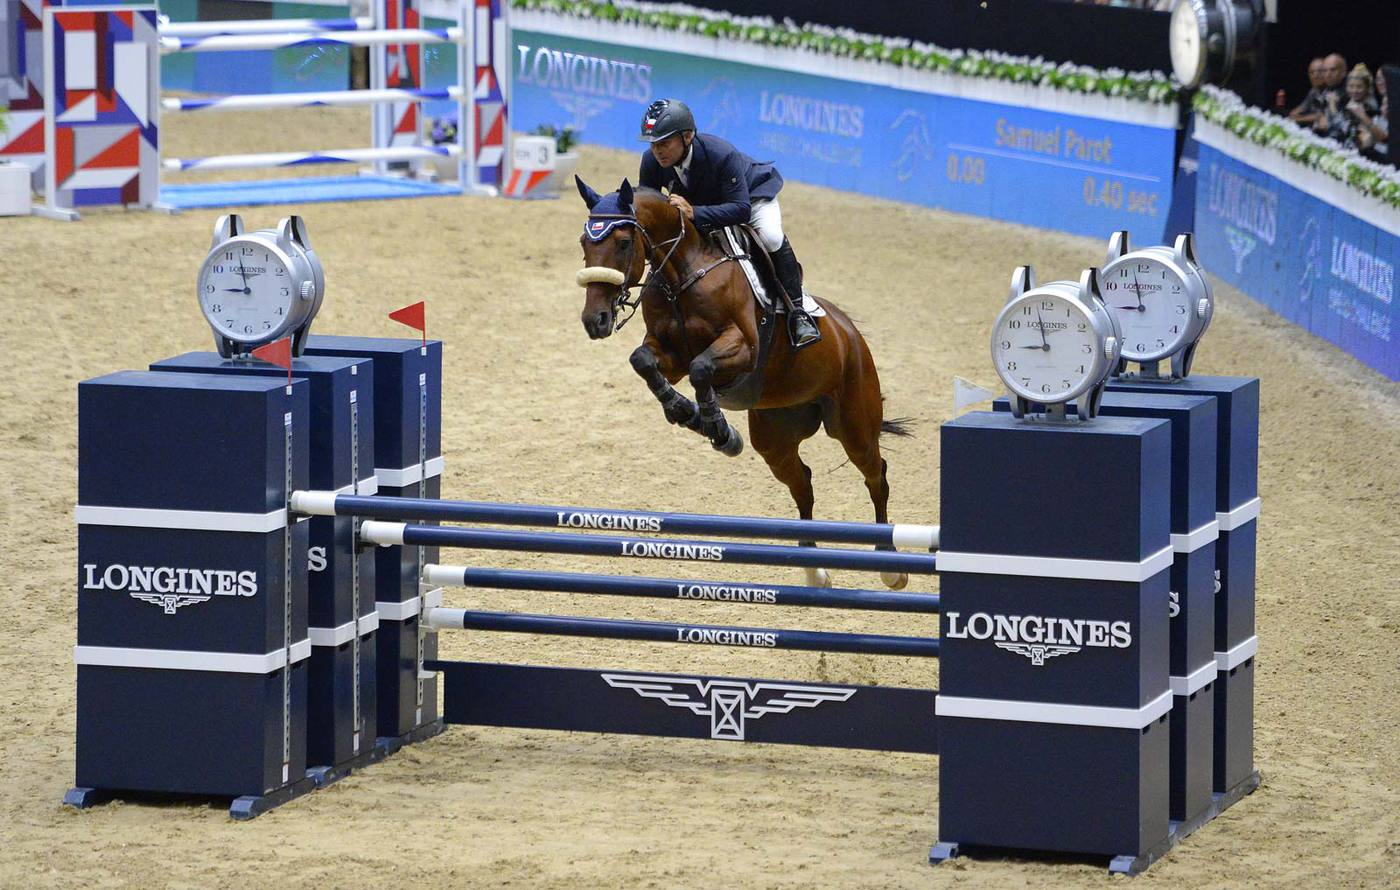 Longines Show Jumping Event: Longines Speed Challenge: Nayel Nassar and Lordan are the fastest 4